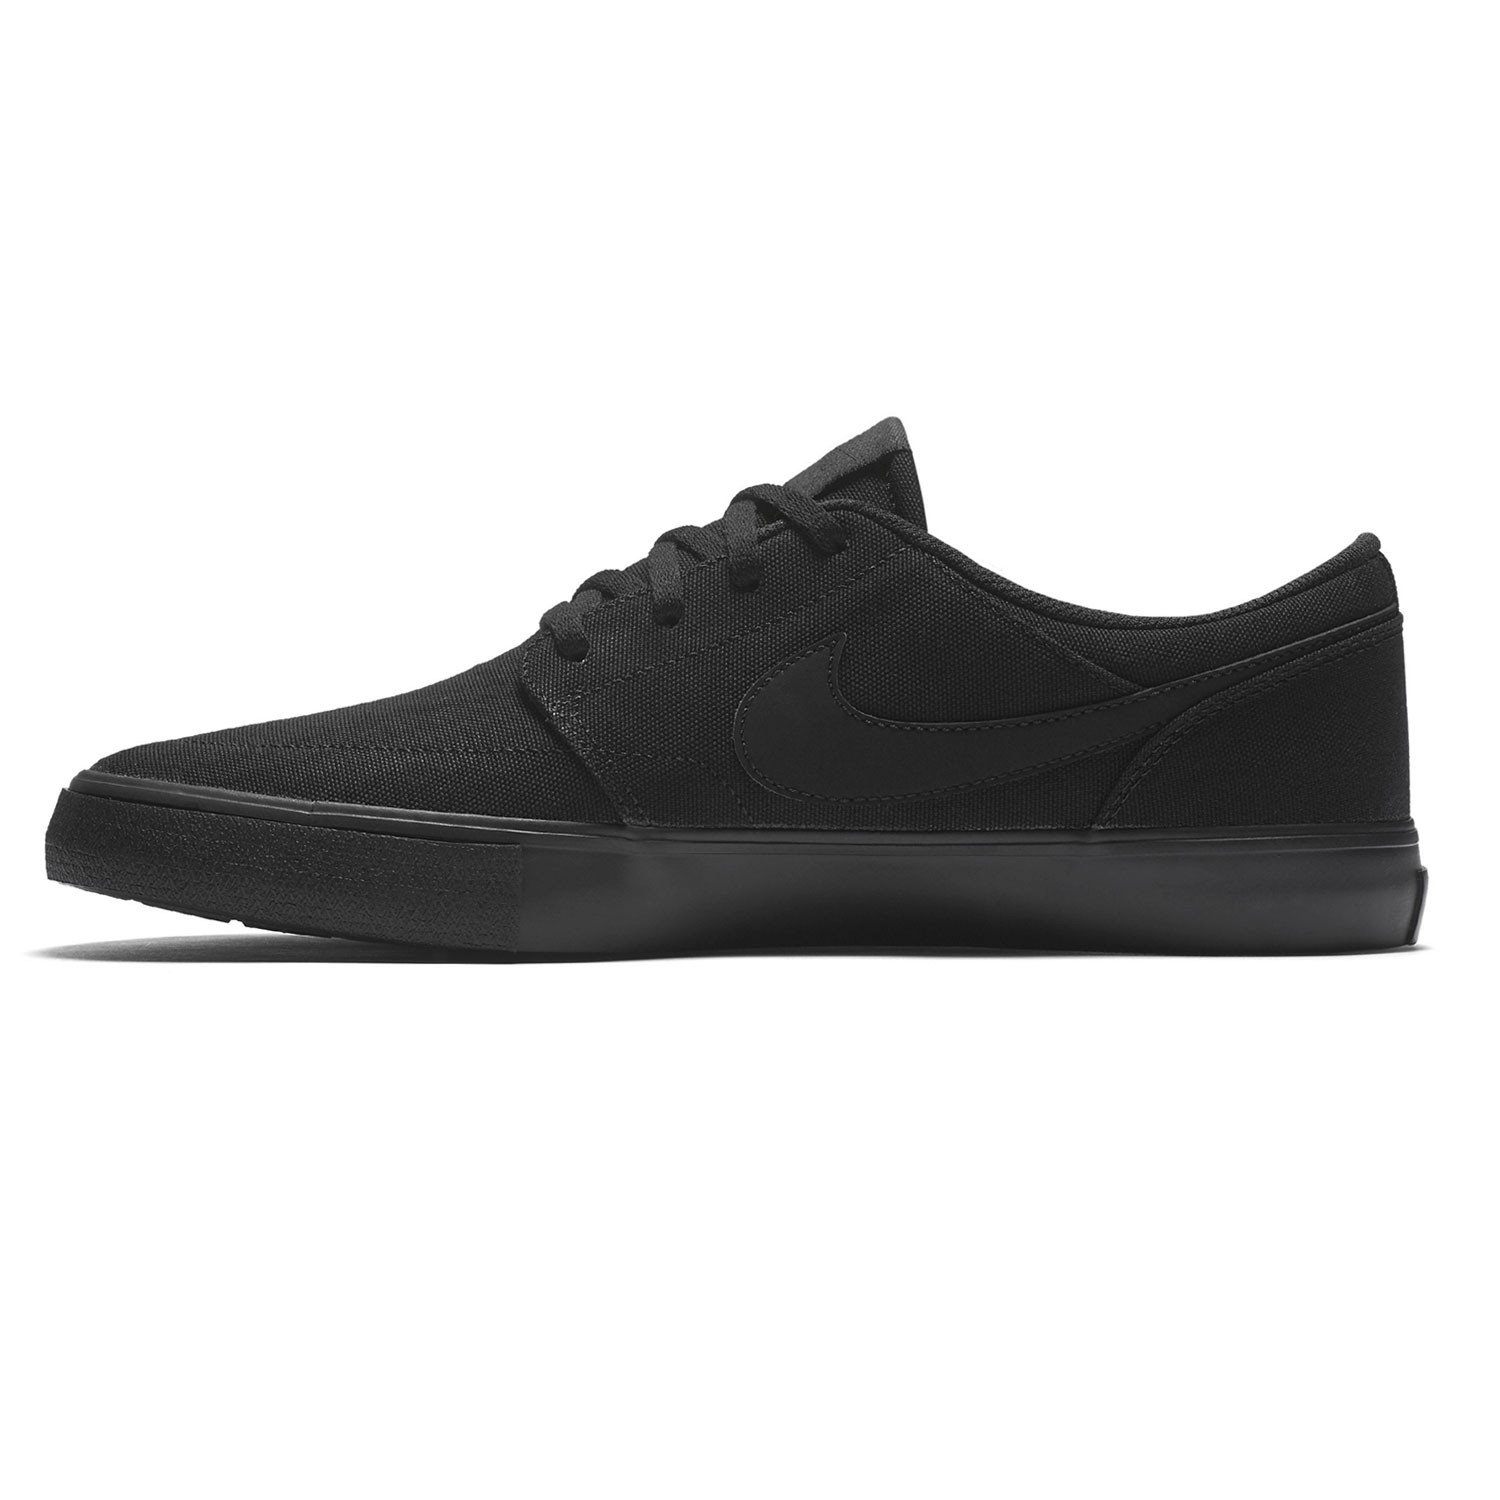 sneakers nike sb solarsoft portmore ii canvas black black snowboard zezula. Black Bedroom Furniture Sets. Home Design Ideas